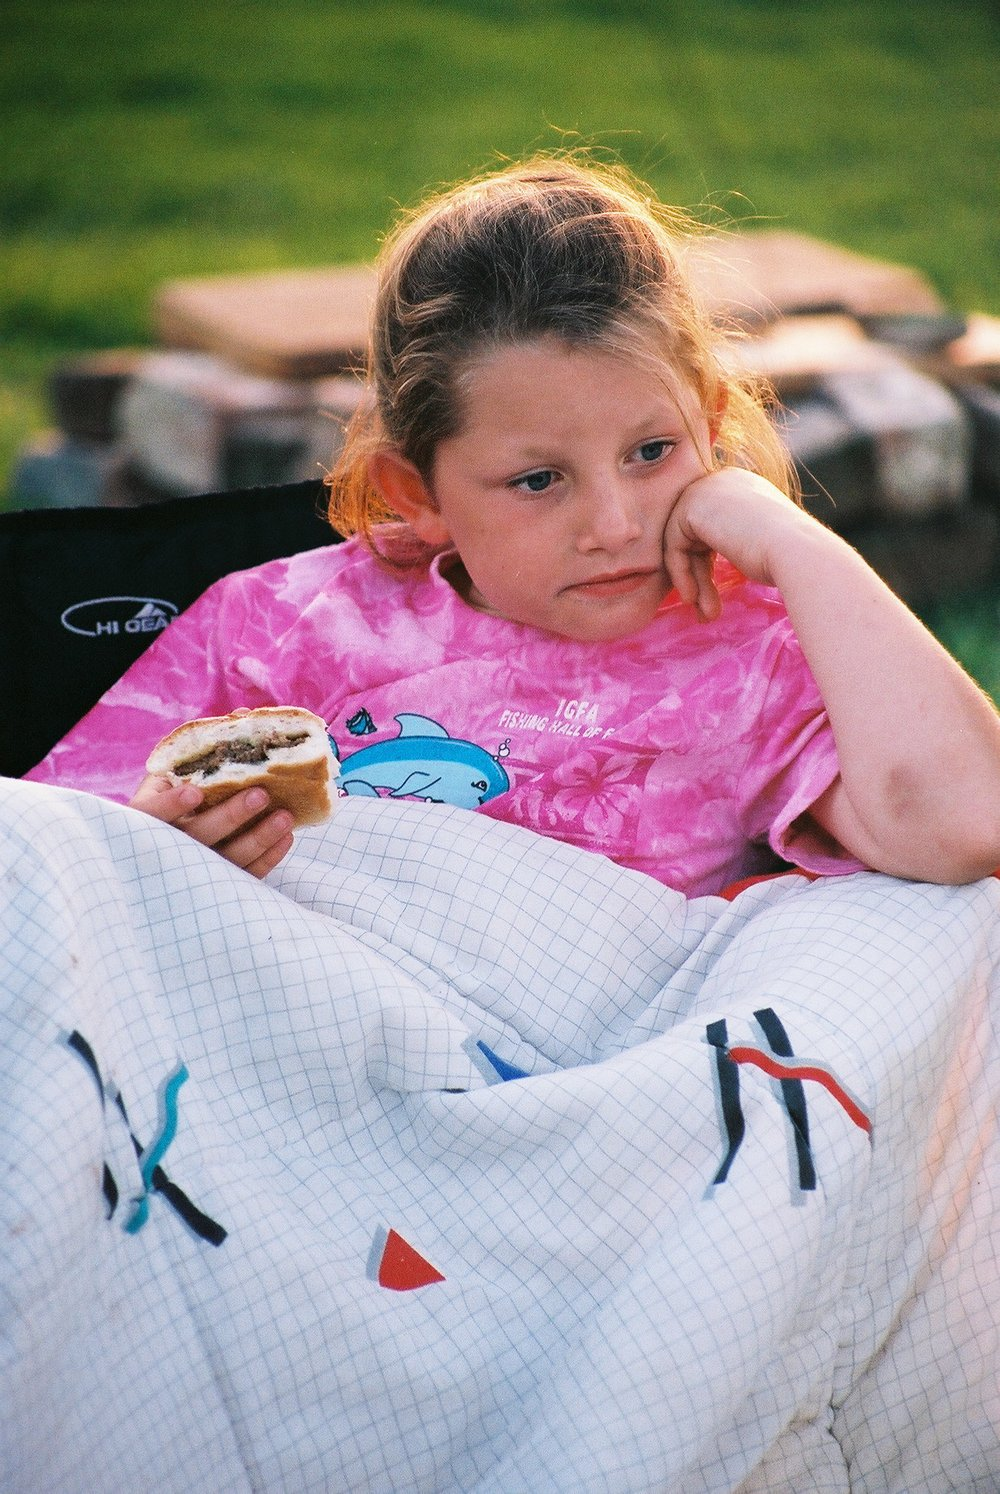 Girl at Barbecue.JPG